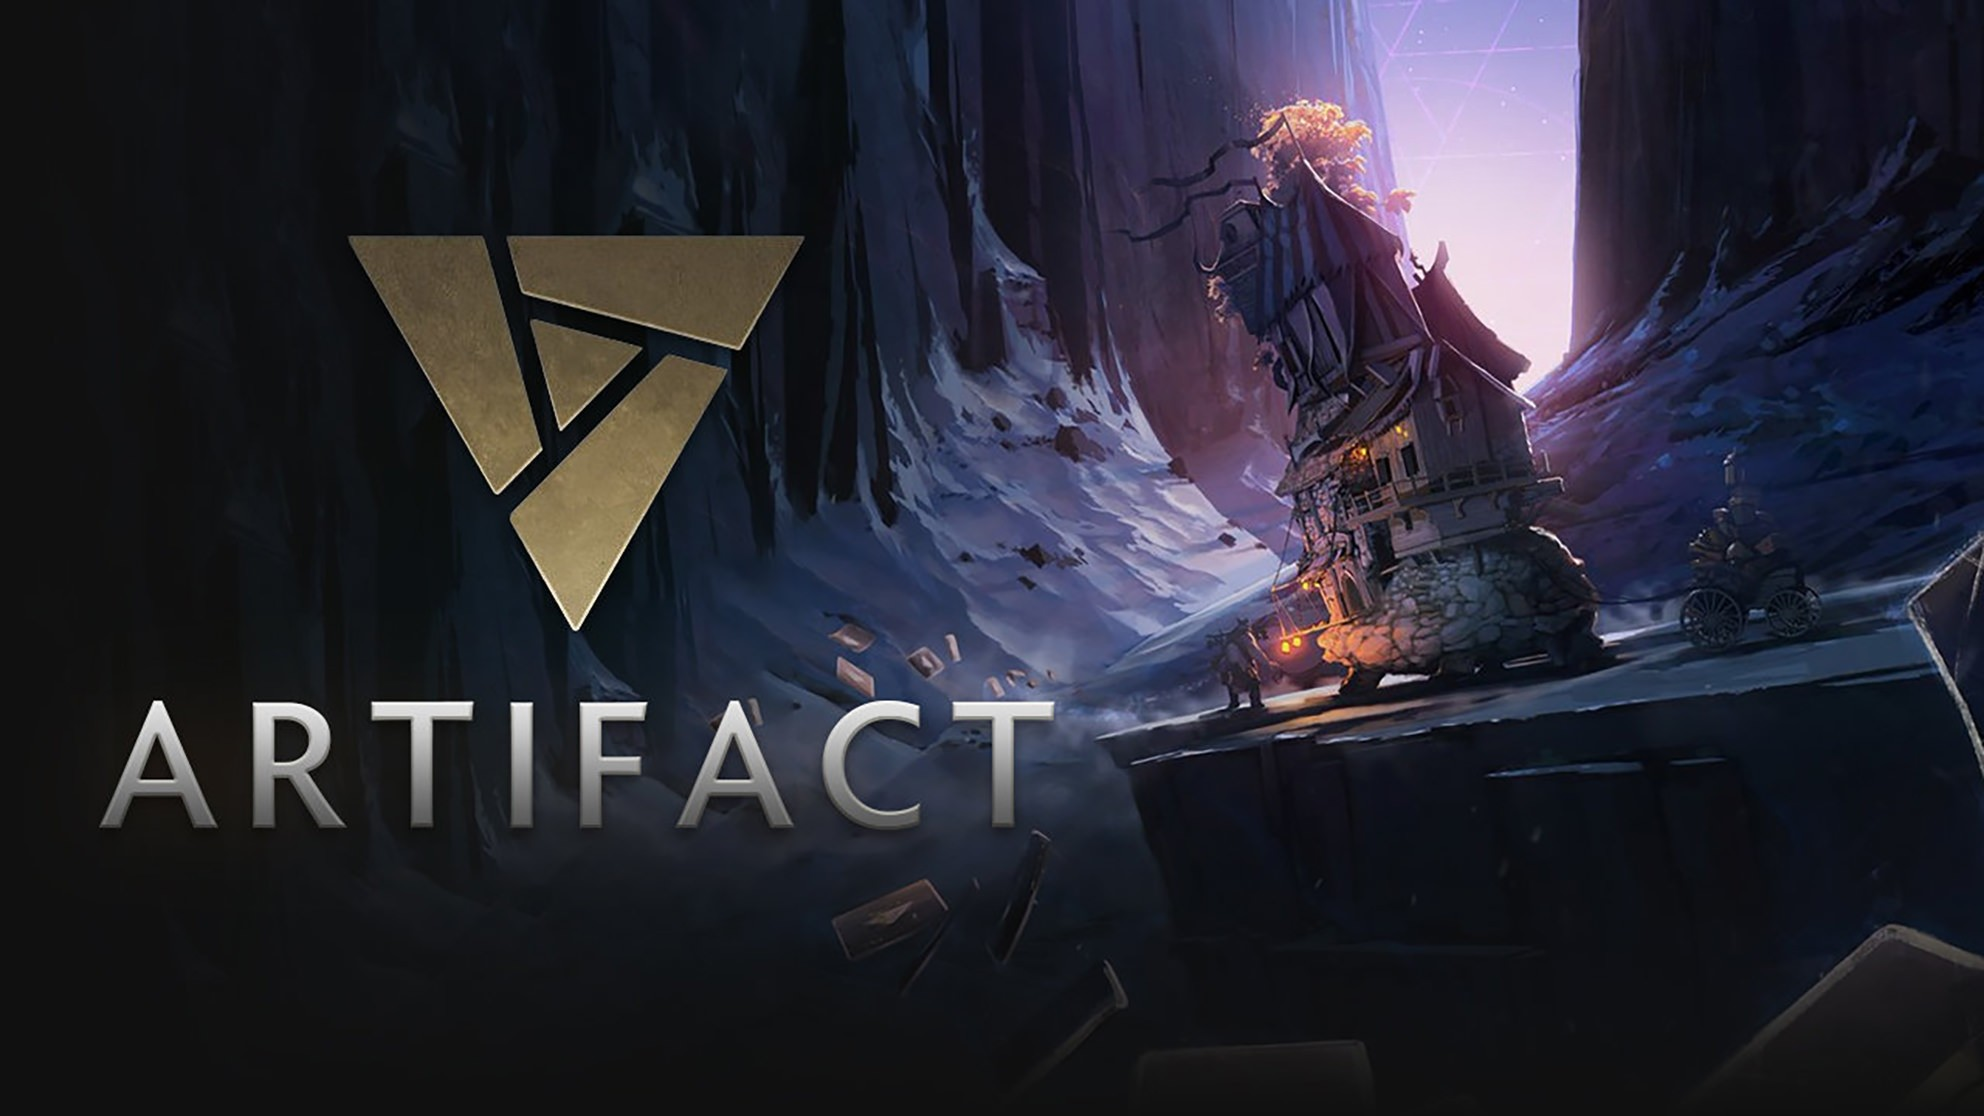 Unobvious differences between Dota 2 and Artifact